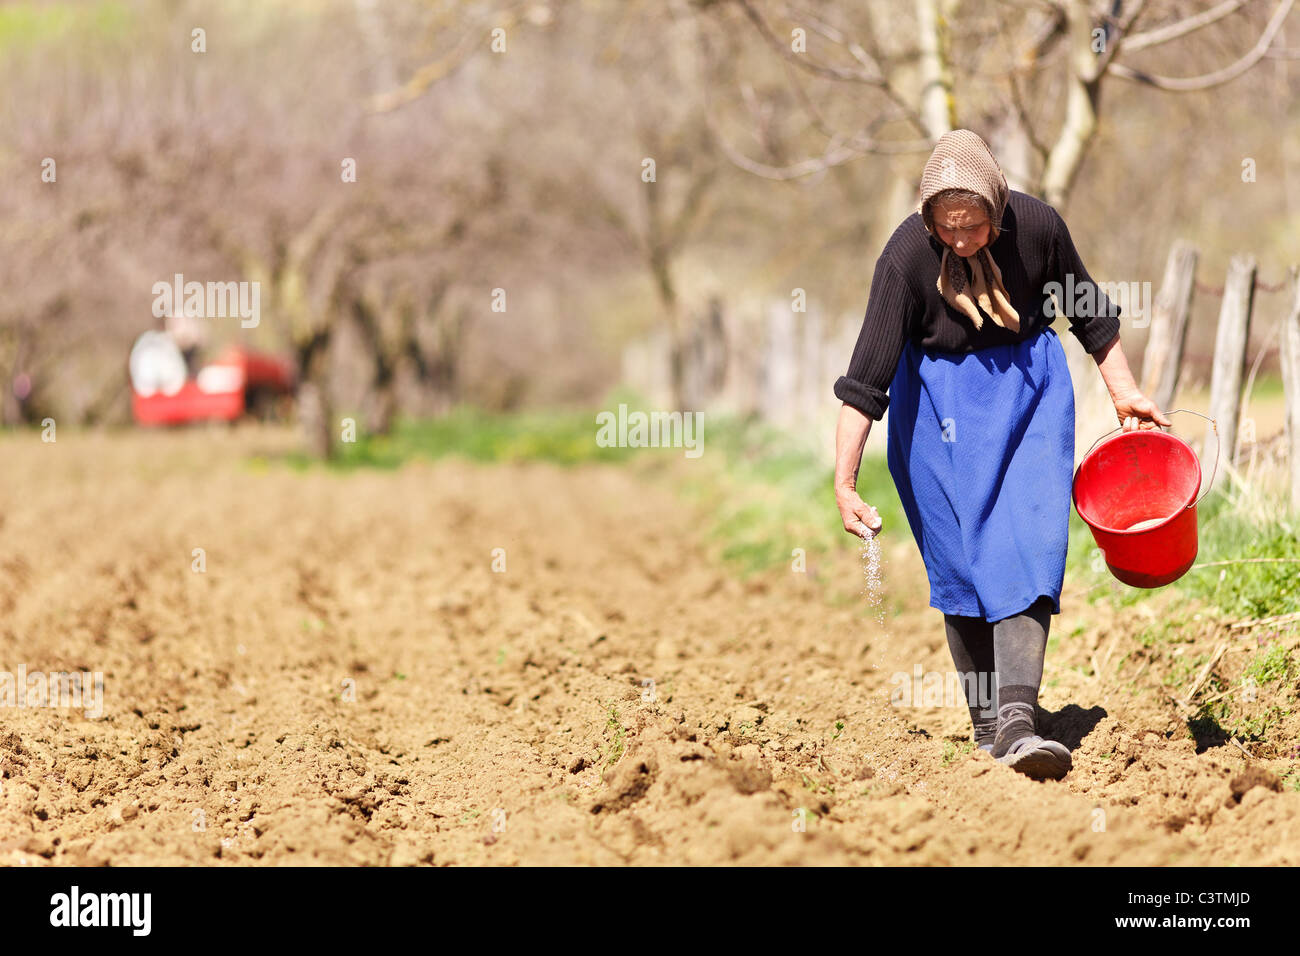 Old farmer woman sowing seeds mixed with fertilizer from a bucket - Stock Image